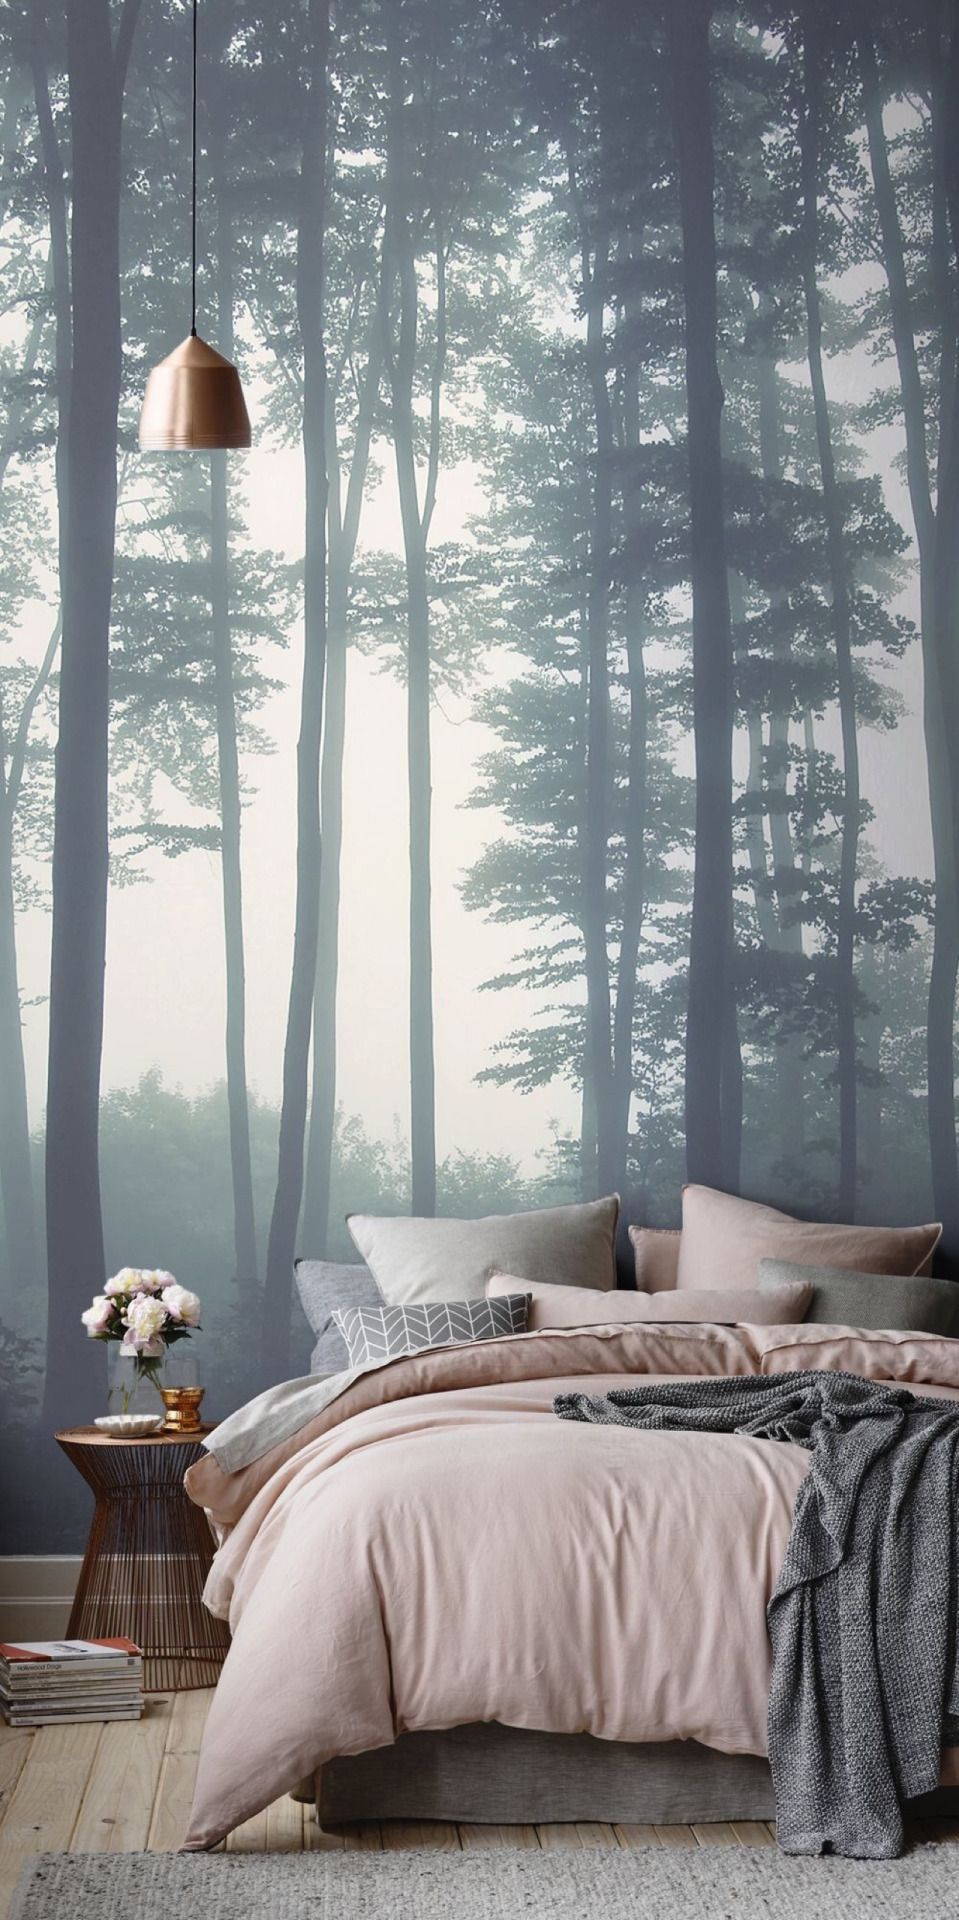 Schlafzimmer Natur With Love And Light Perfection Bedroom Pinterest Bedroom